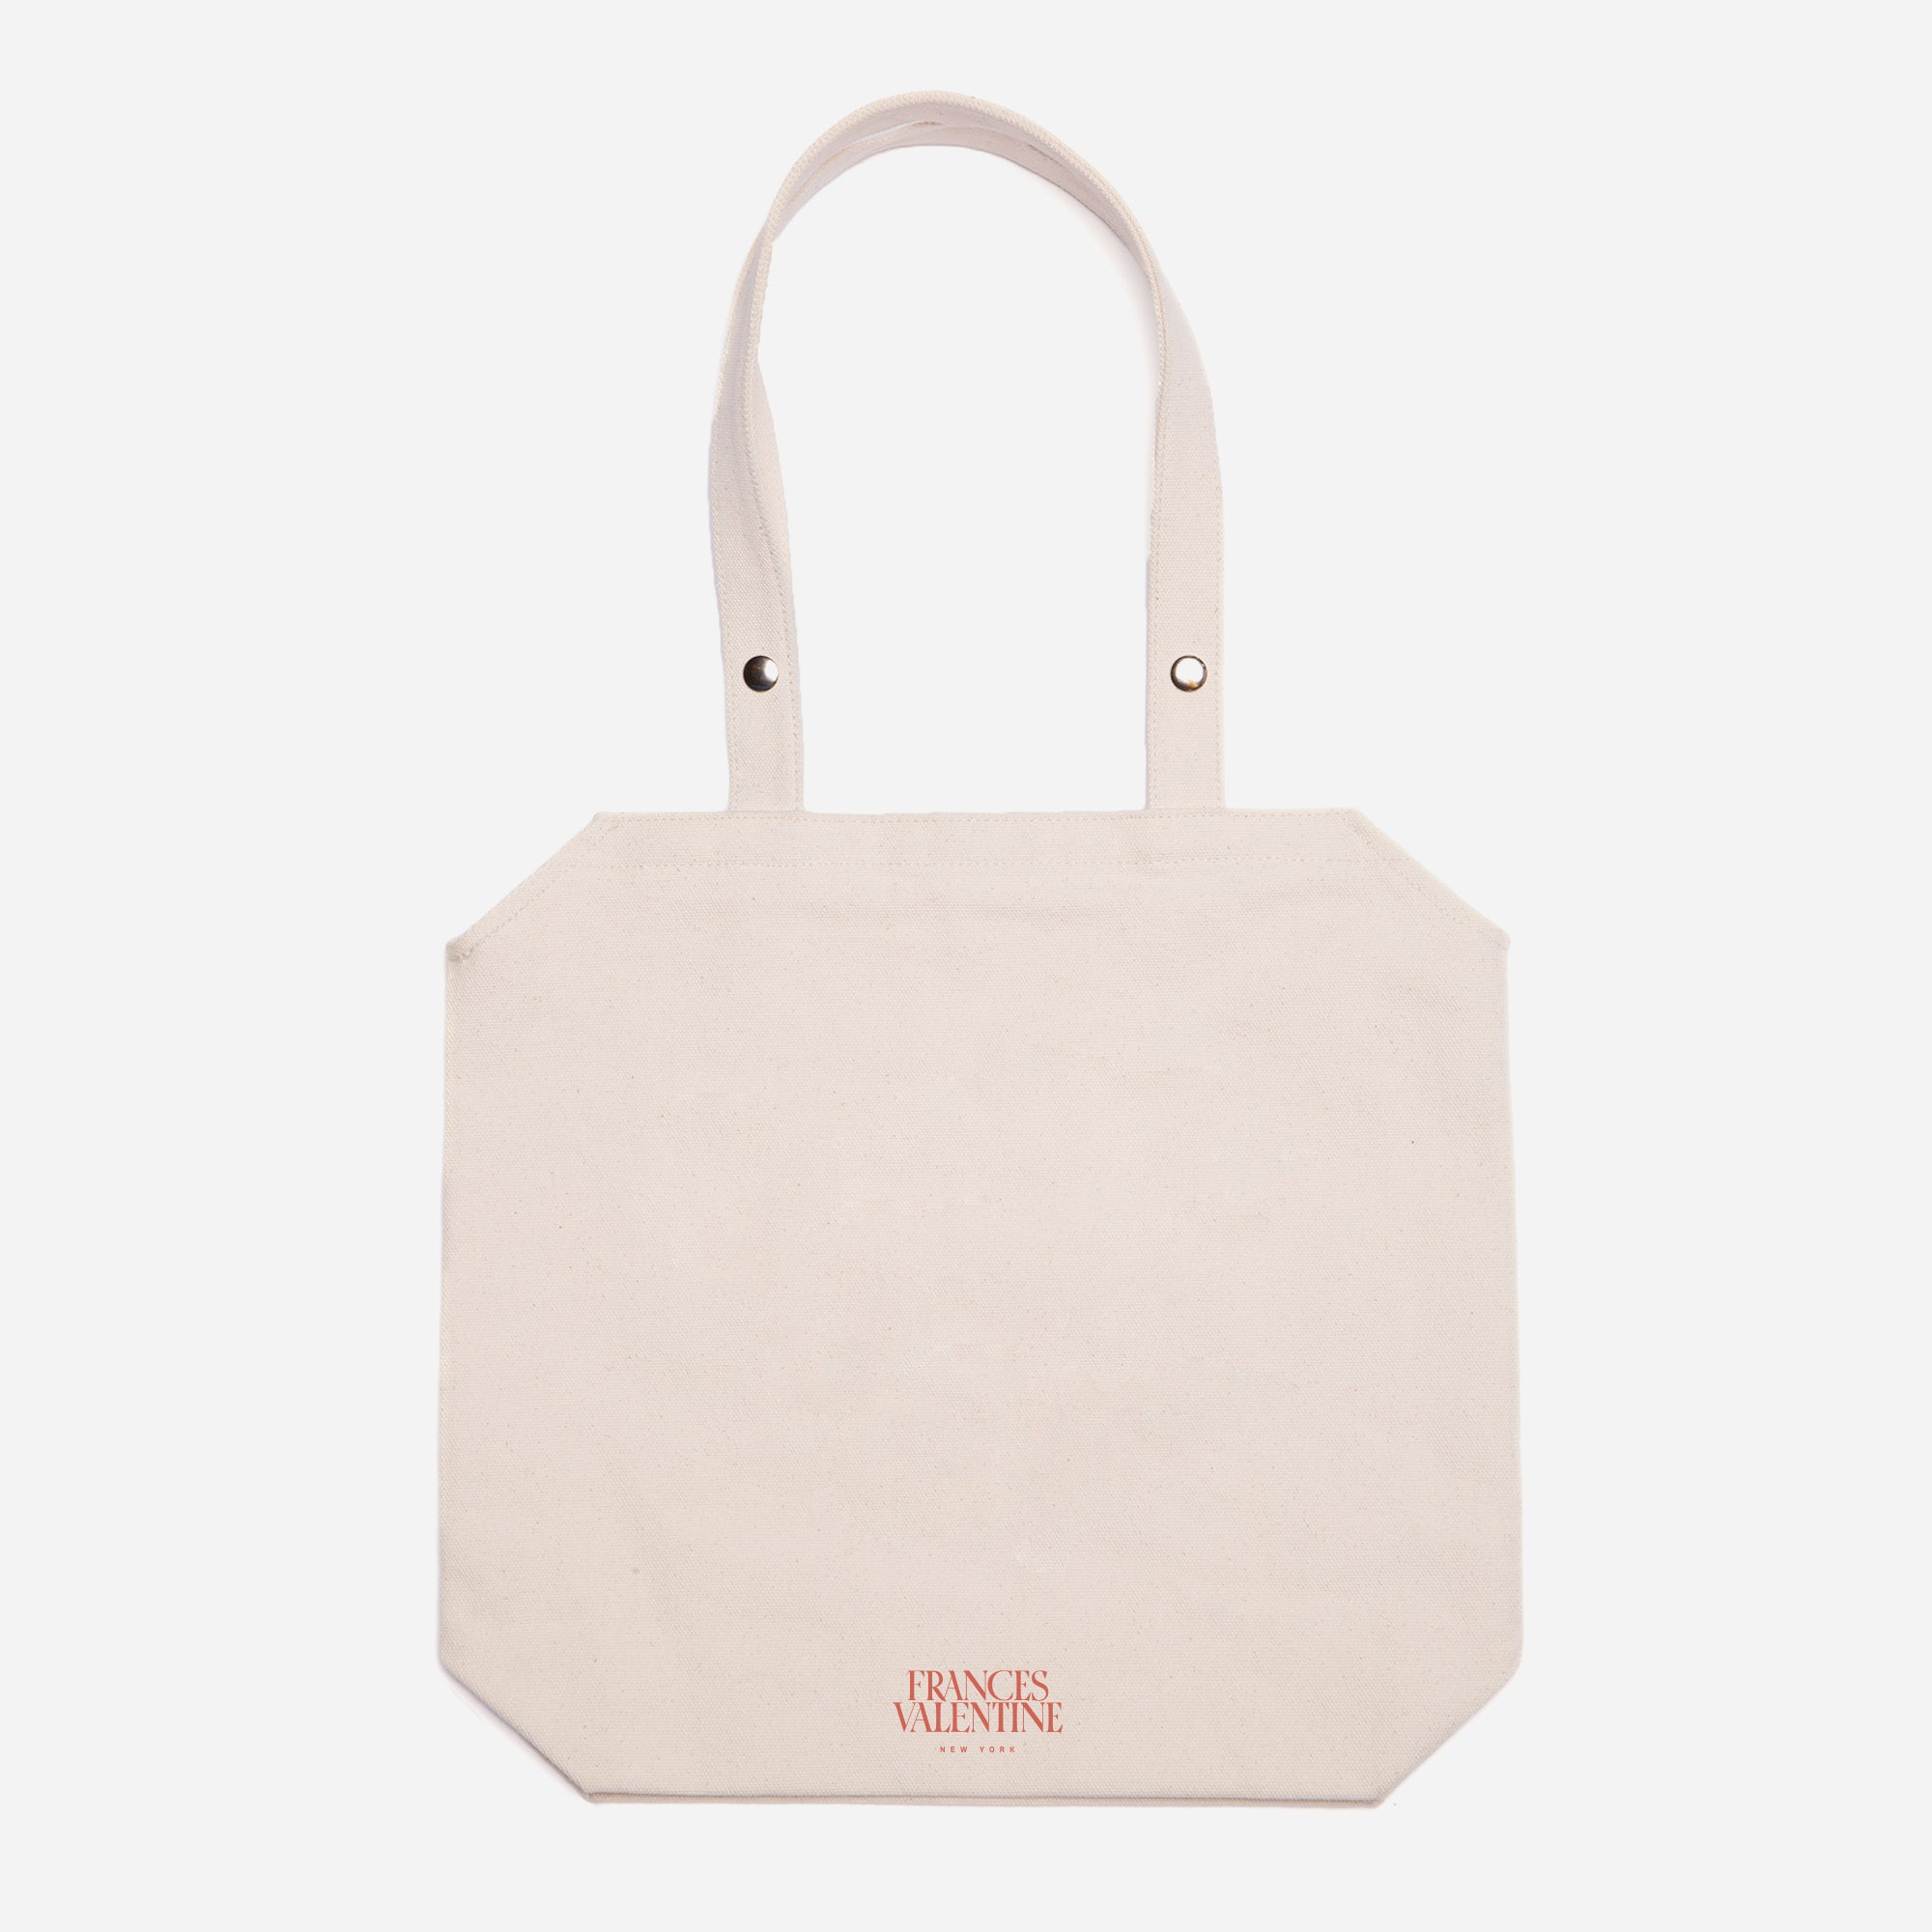 Katy's Favorite Things Canvas Tote Pink